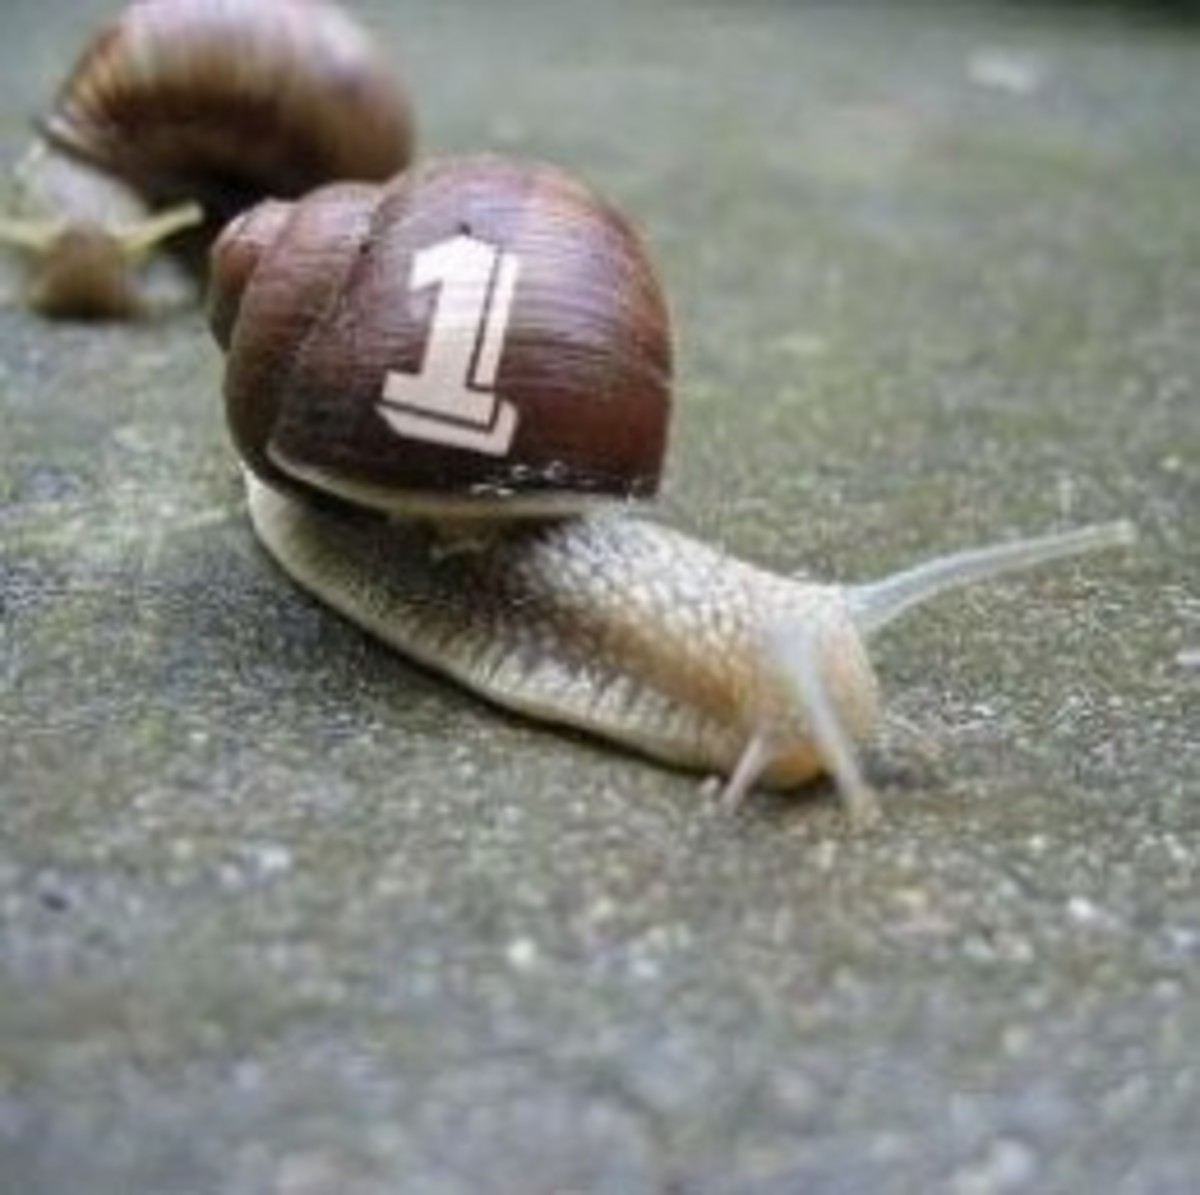 The first snail race